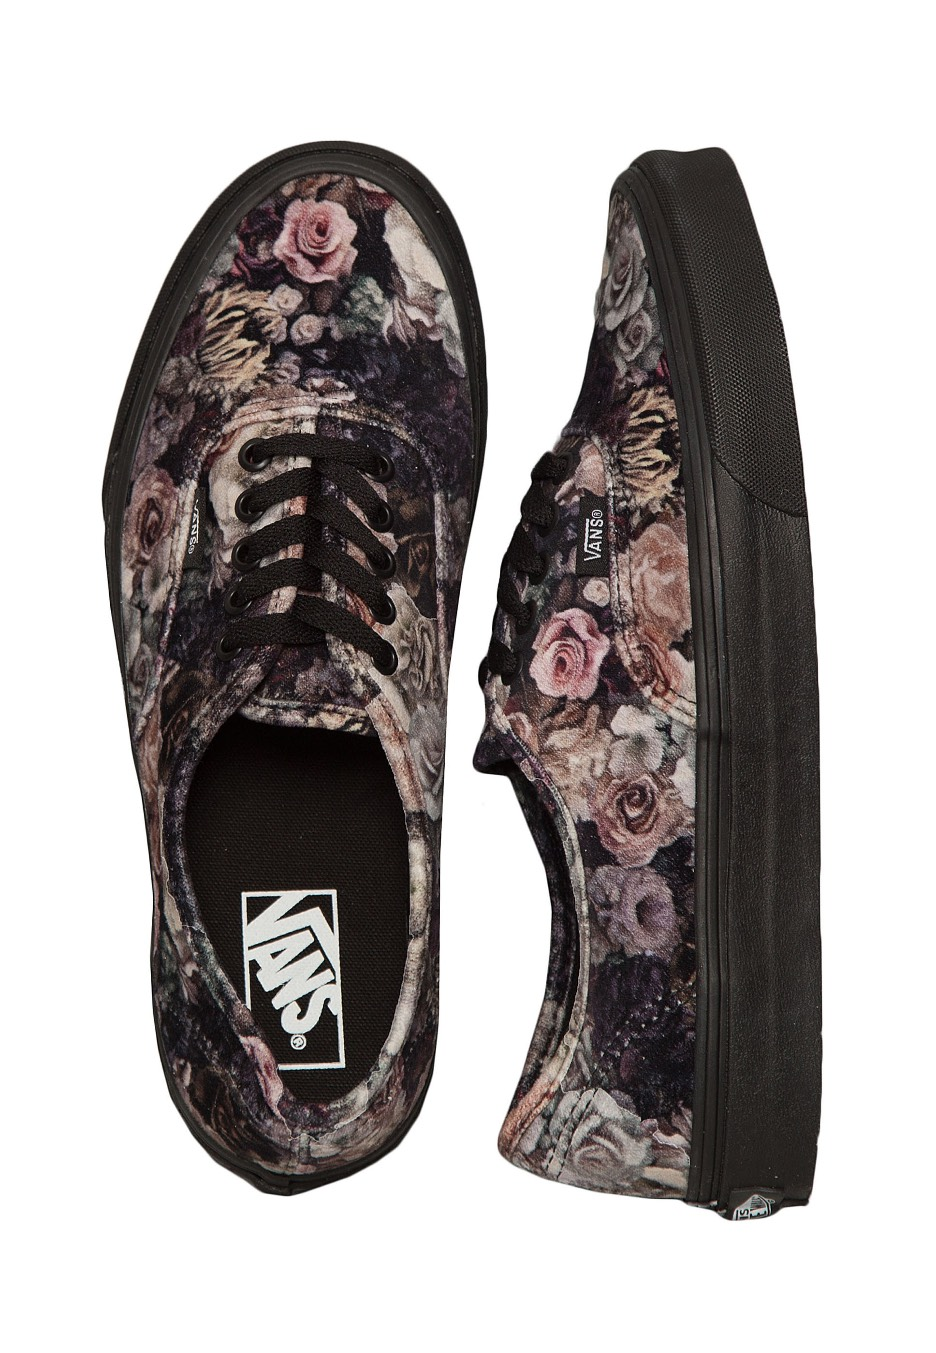 5cb86bebaf2 Vans - Authentic Velvet Floral Black - Girl Shoes - Impericon.com UK